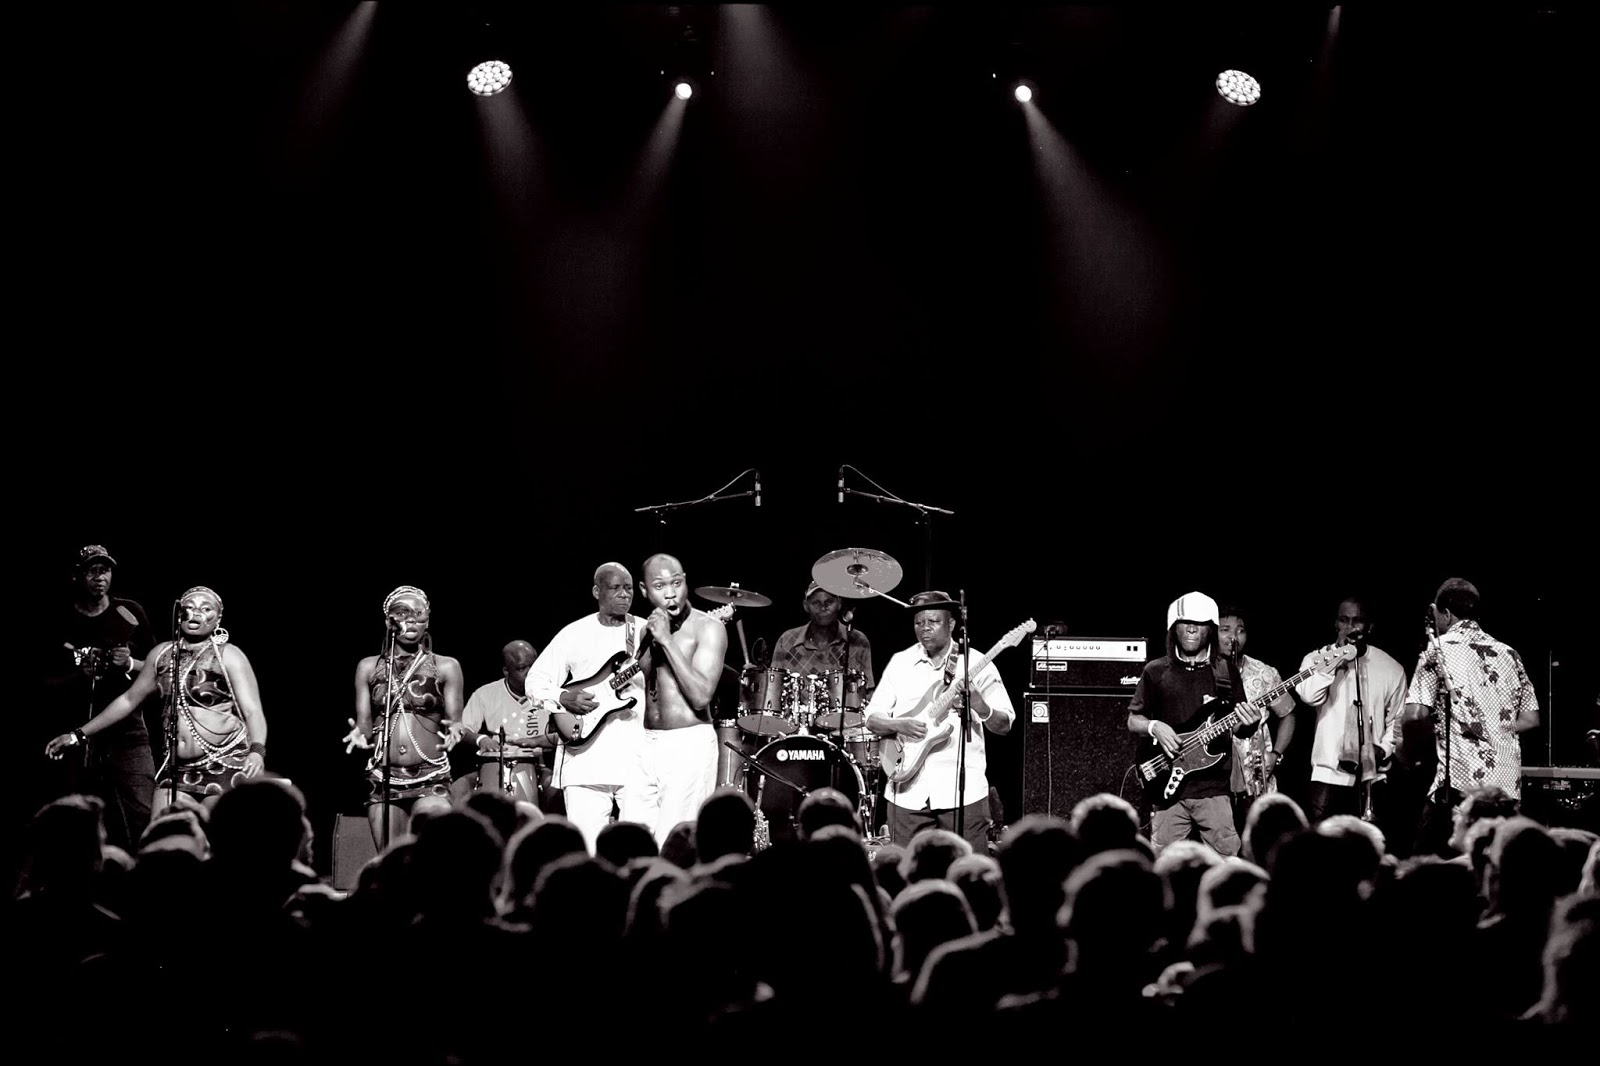 Seun Kuti and Egypt 80 Old Town School of Folk Music in Chicago Brings In A African Legend to Chicago (credit Maja Rios, October 25, 2016)